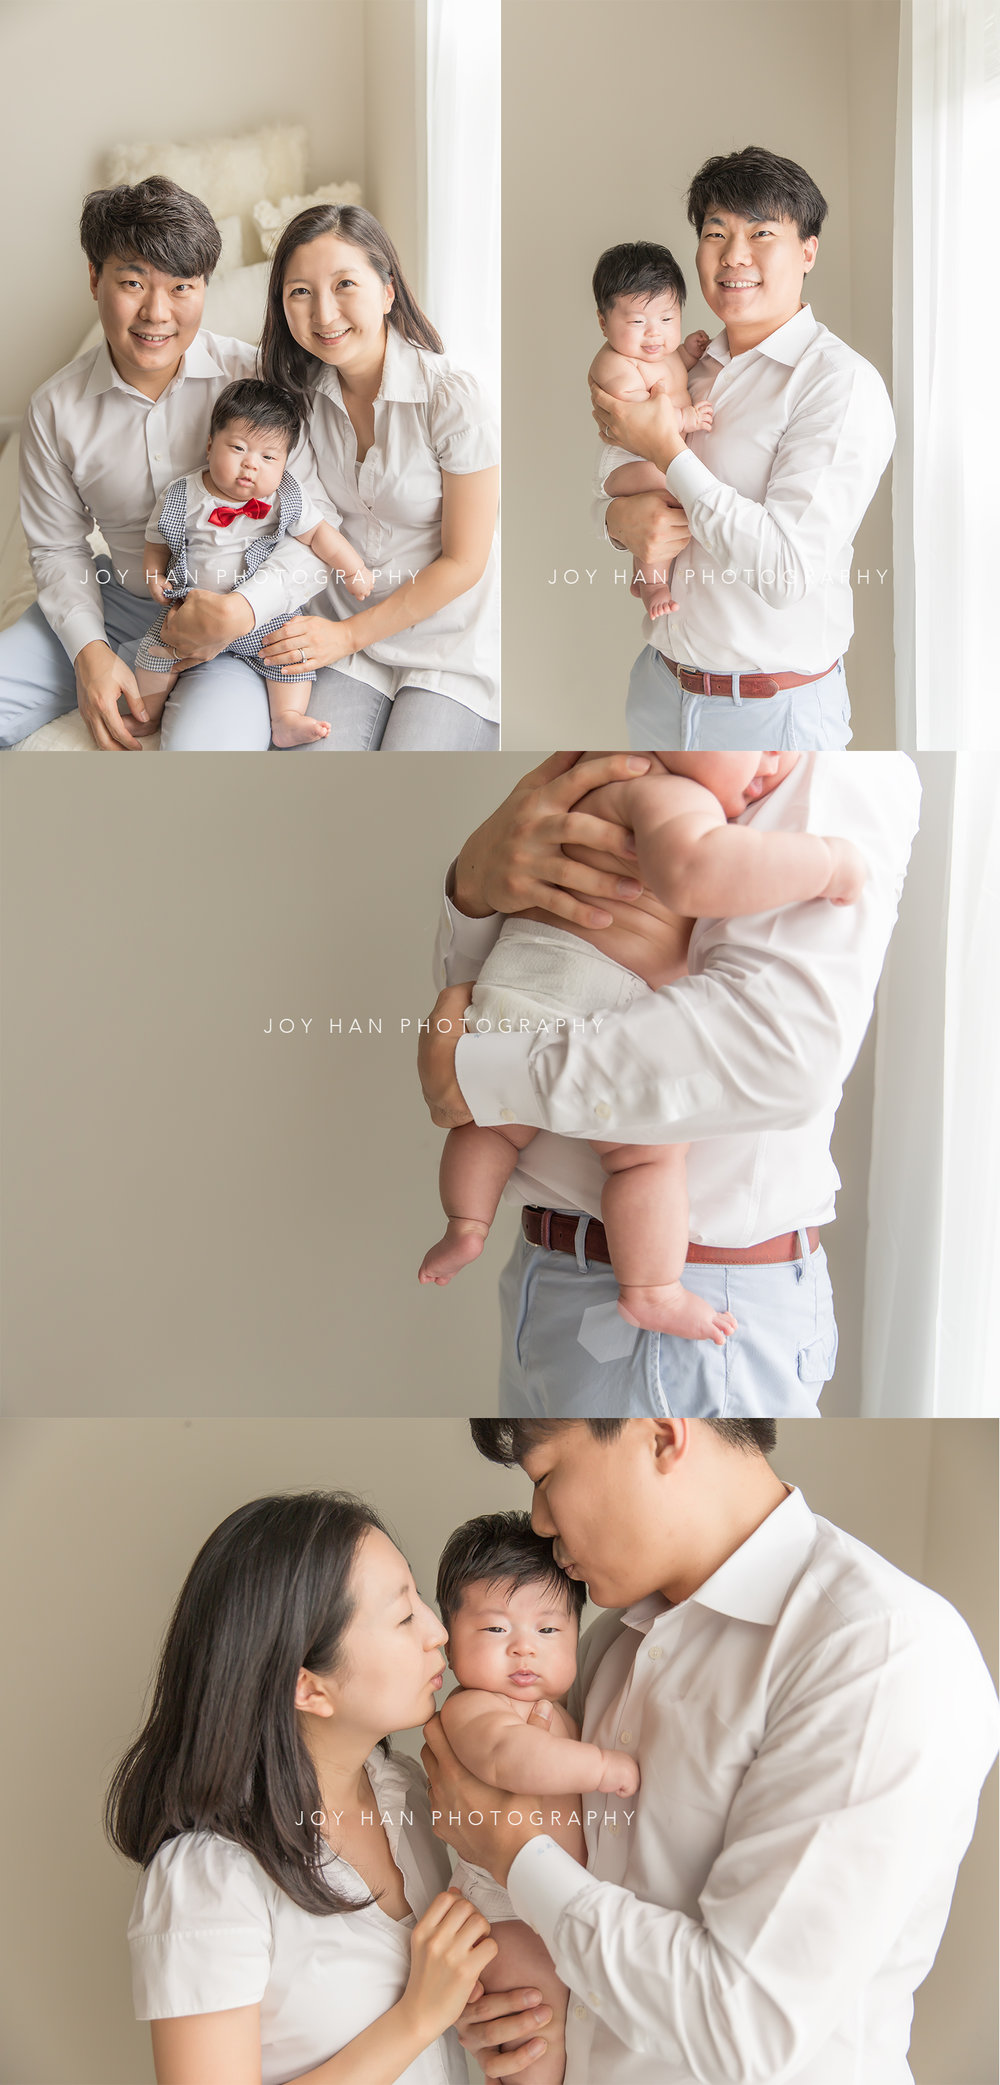 Baby photographer in VA